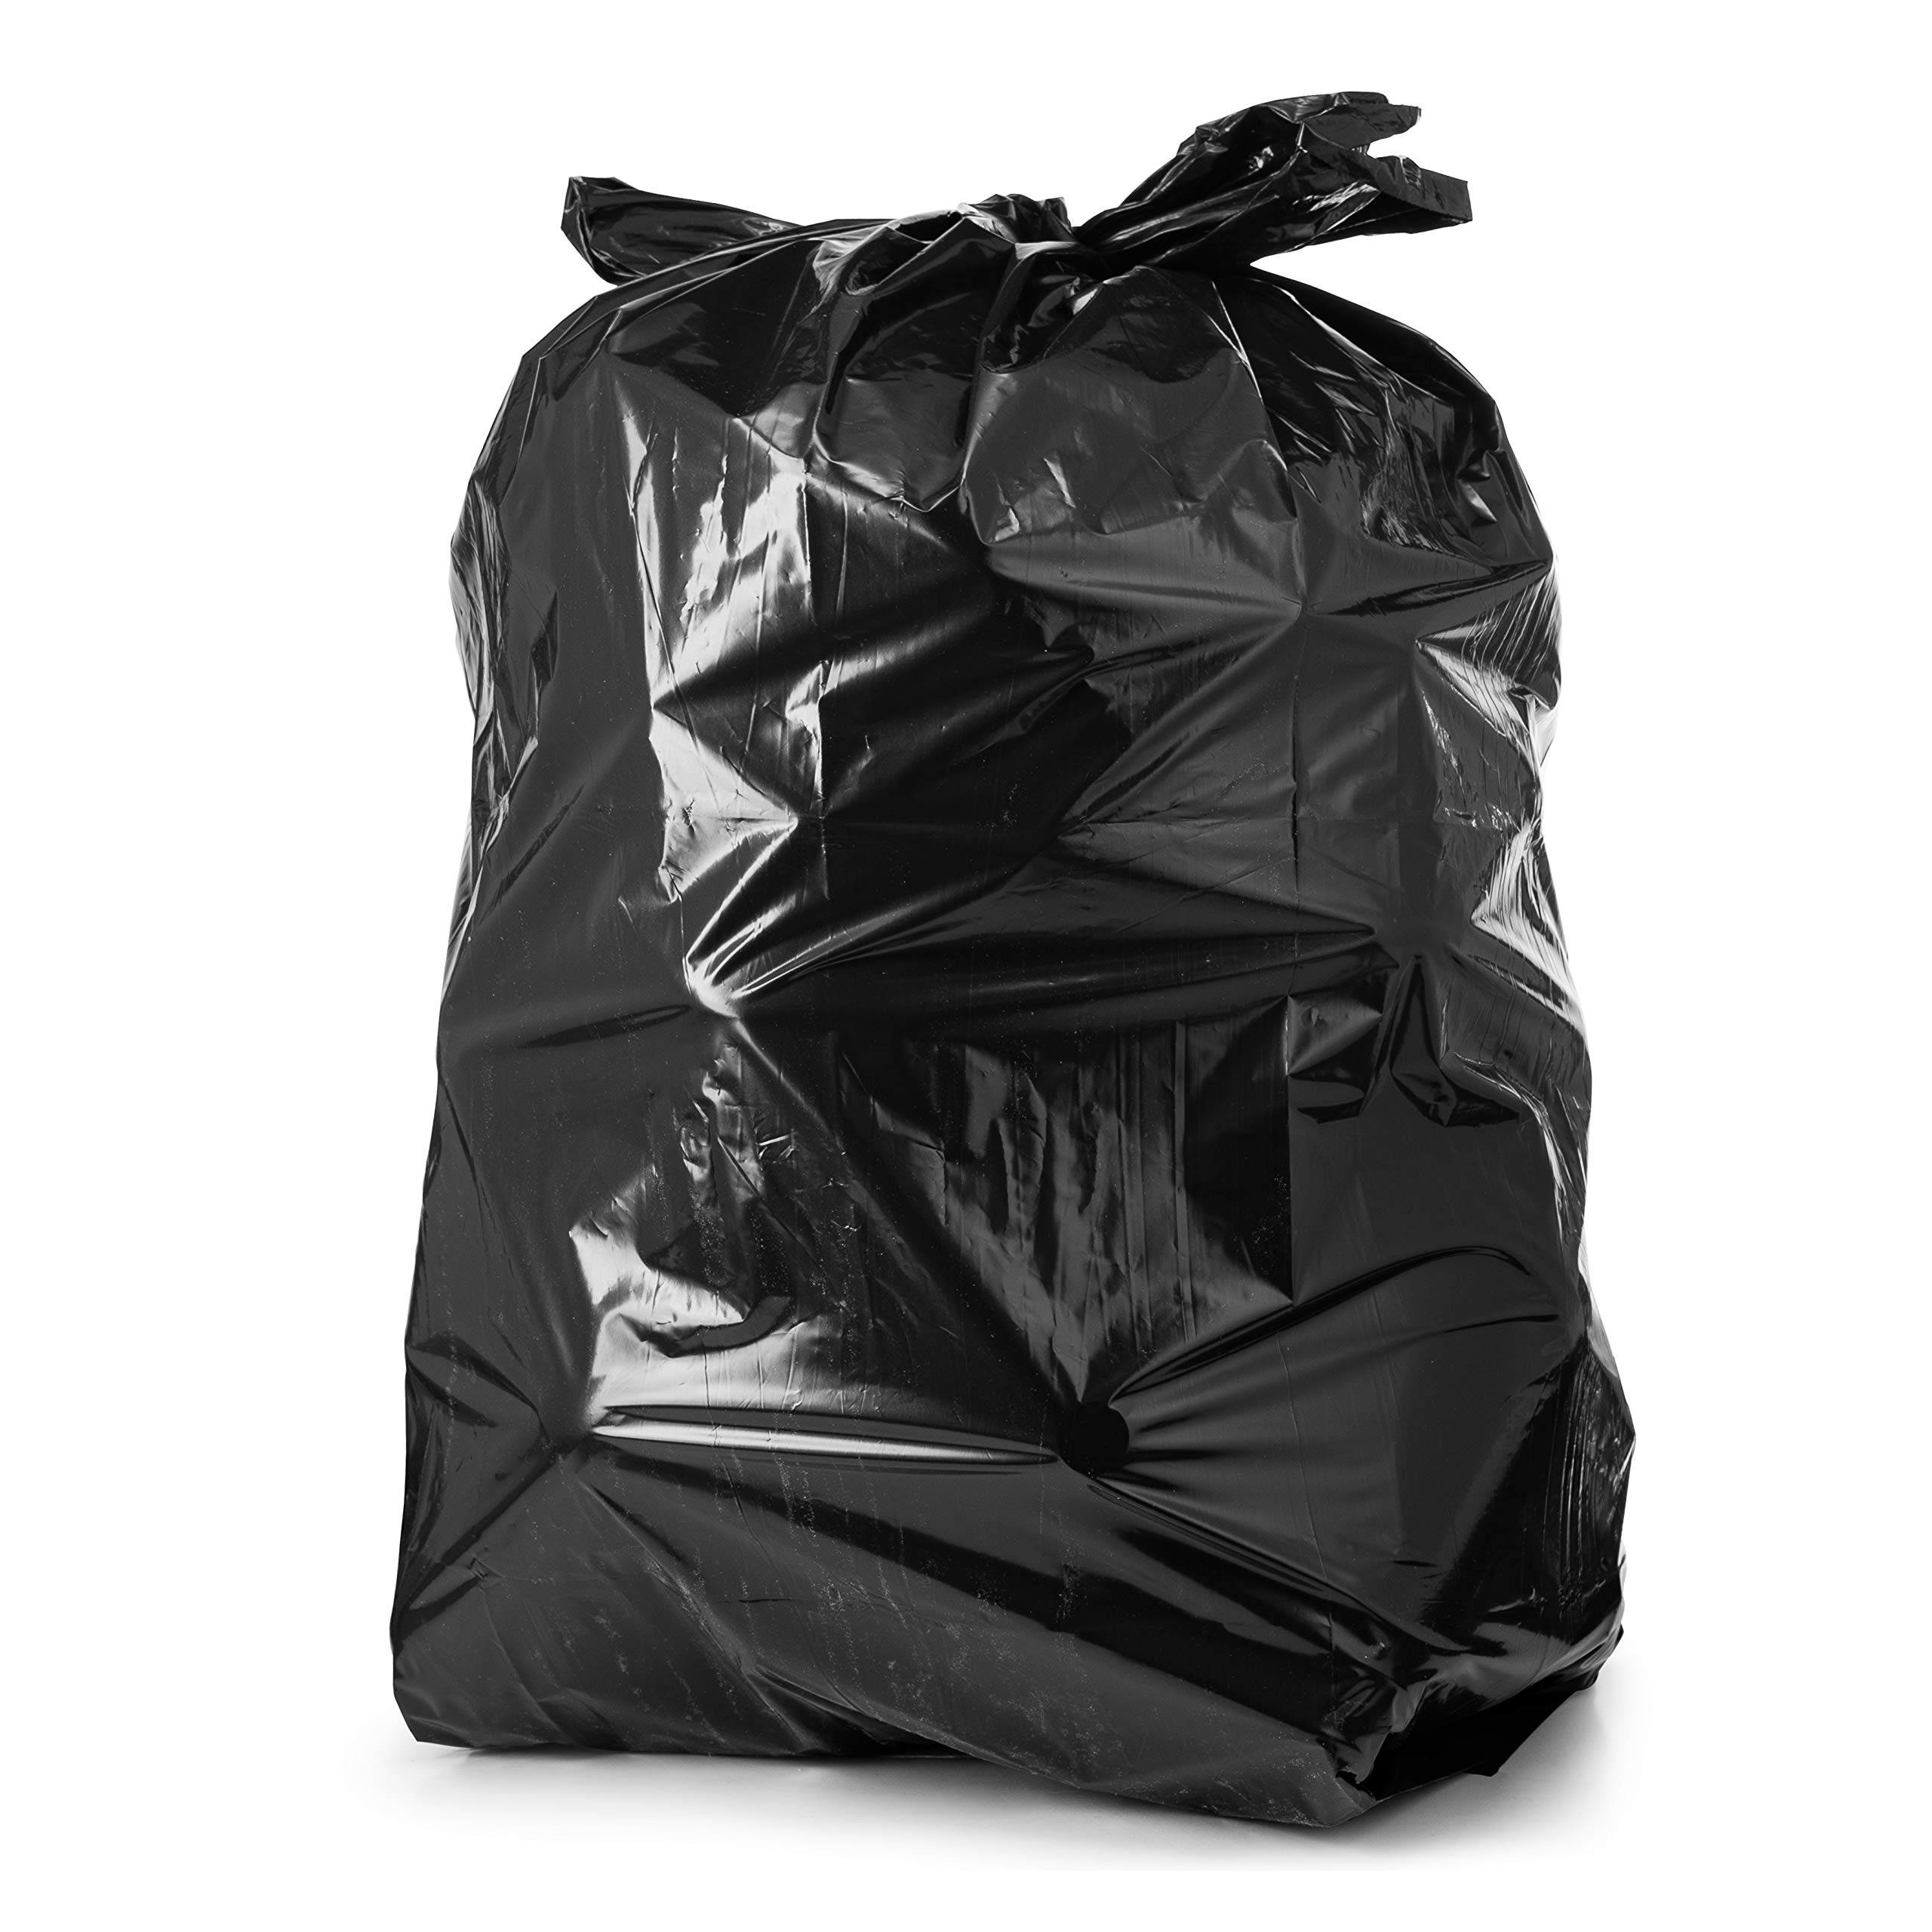 55-60 Gallon Trash Bags, 100/Count, Large Black Garbage Bags, 38'' W x 58'' H, 1.2 Mil by Tasker (Image #6)